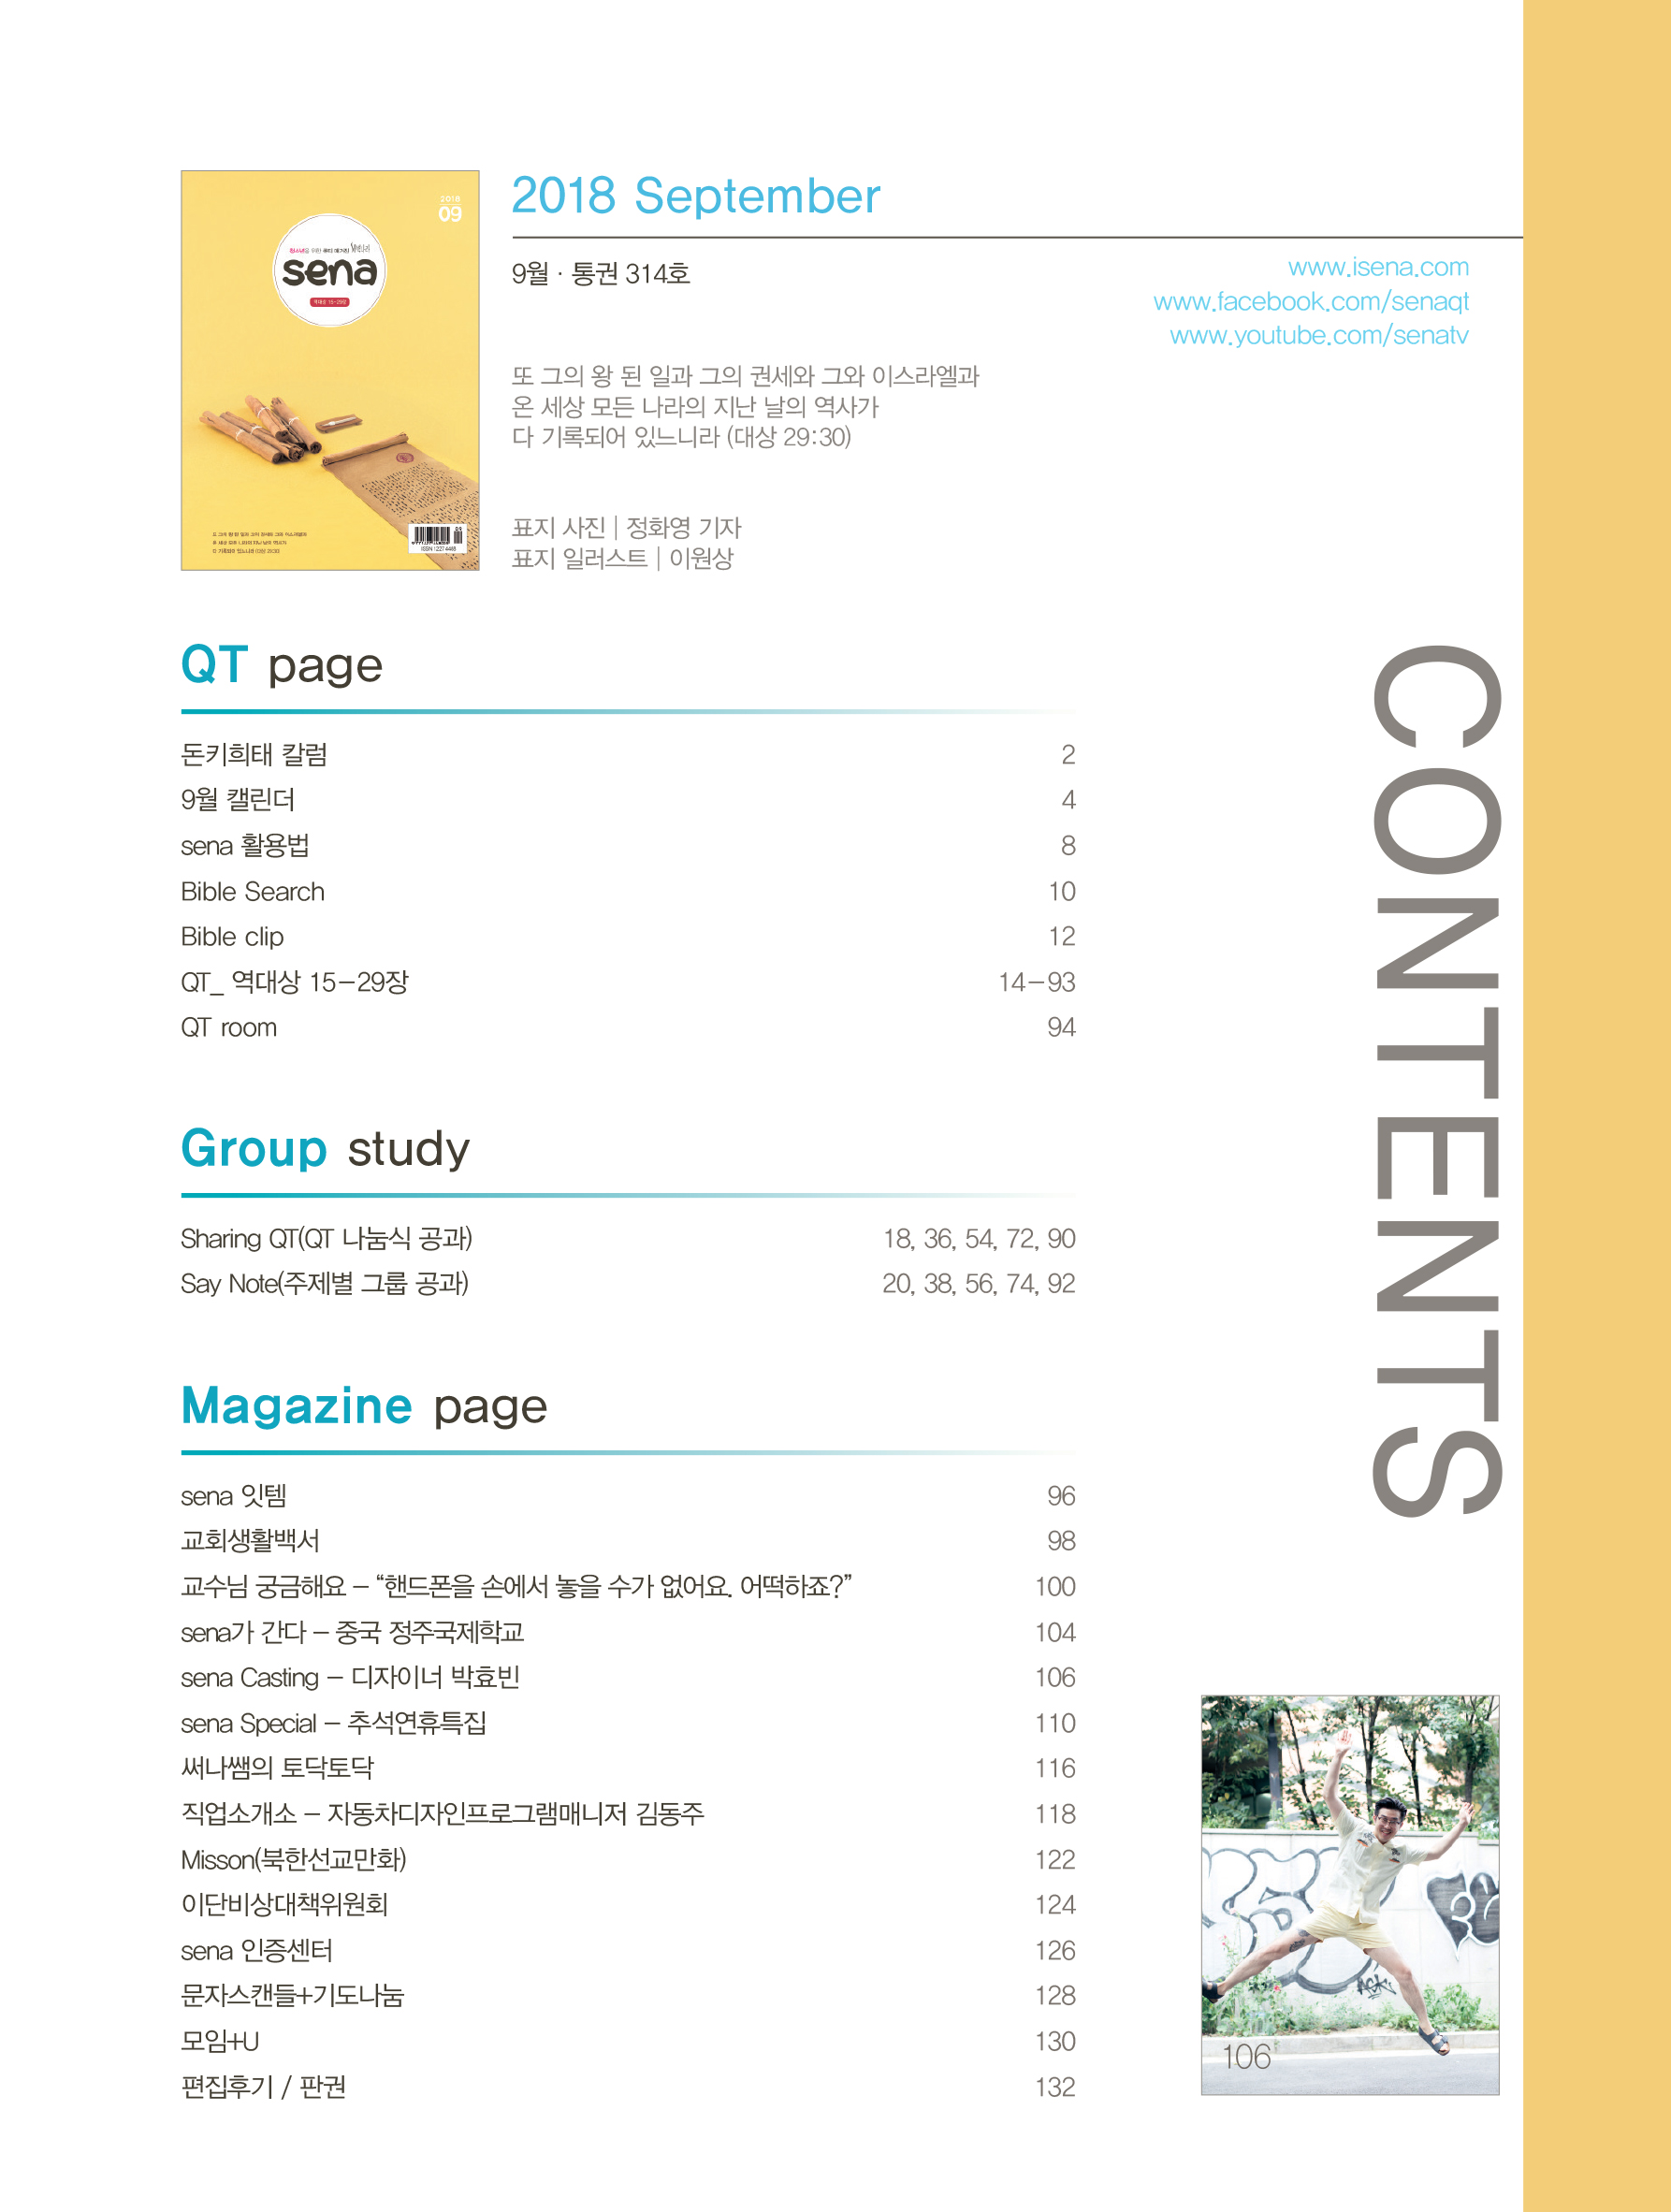 201809 contents